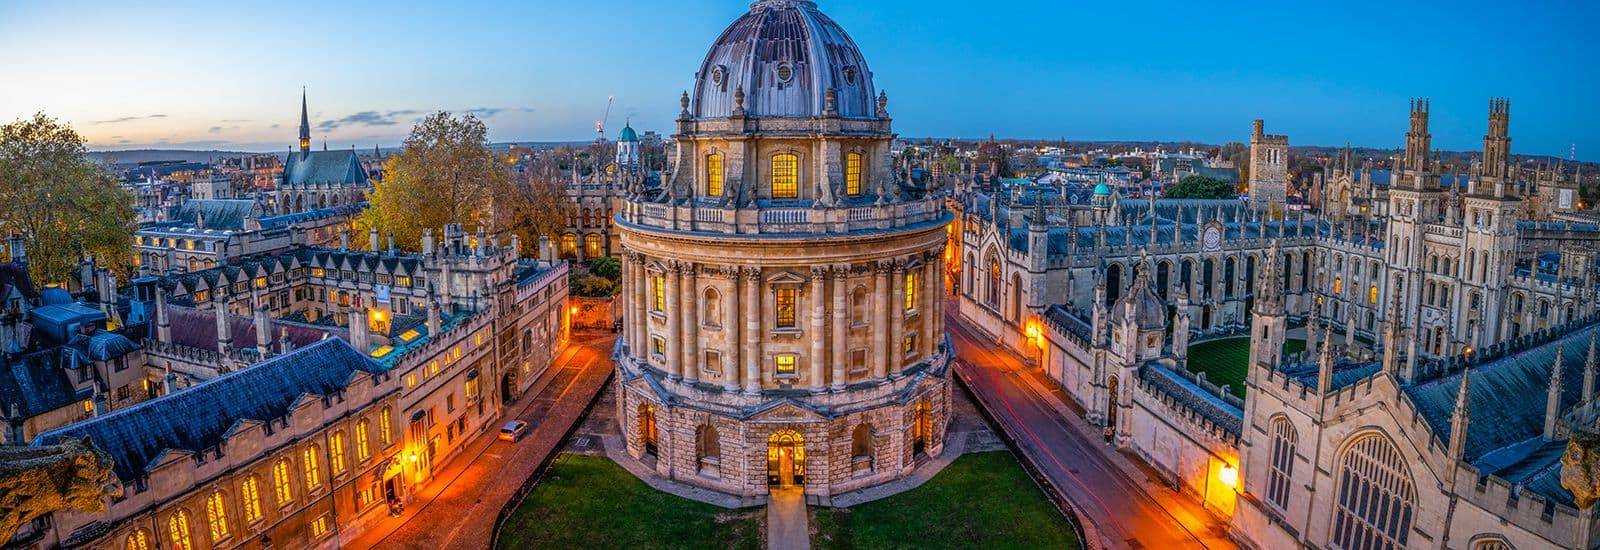 101 Best Things To Do With Kids In Oxford